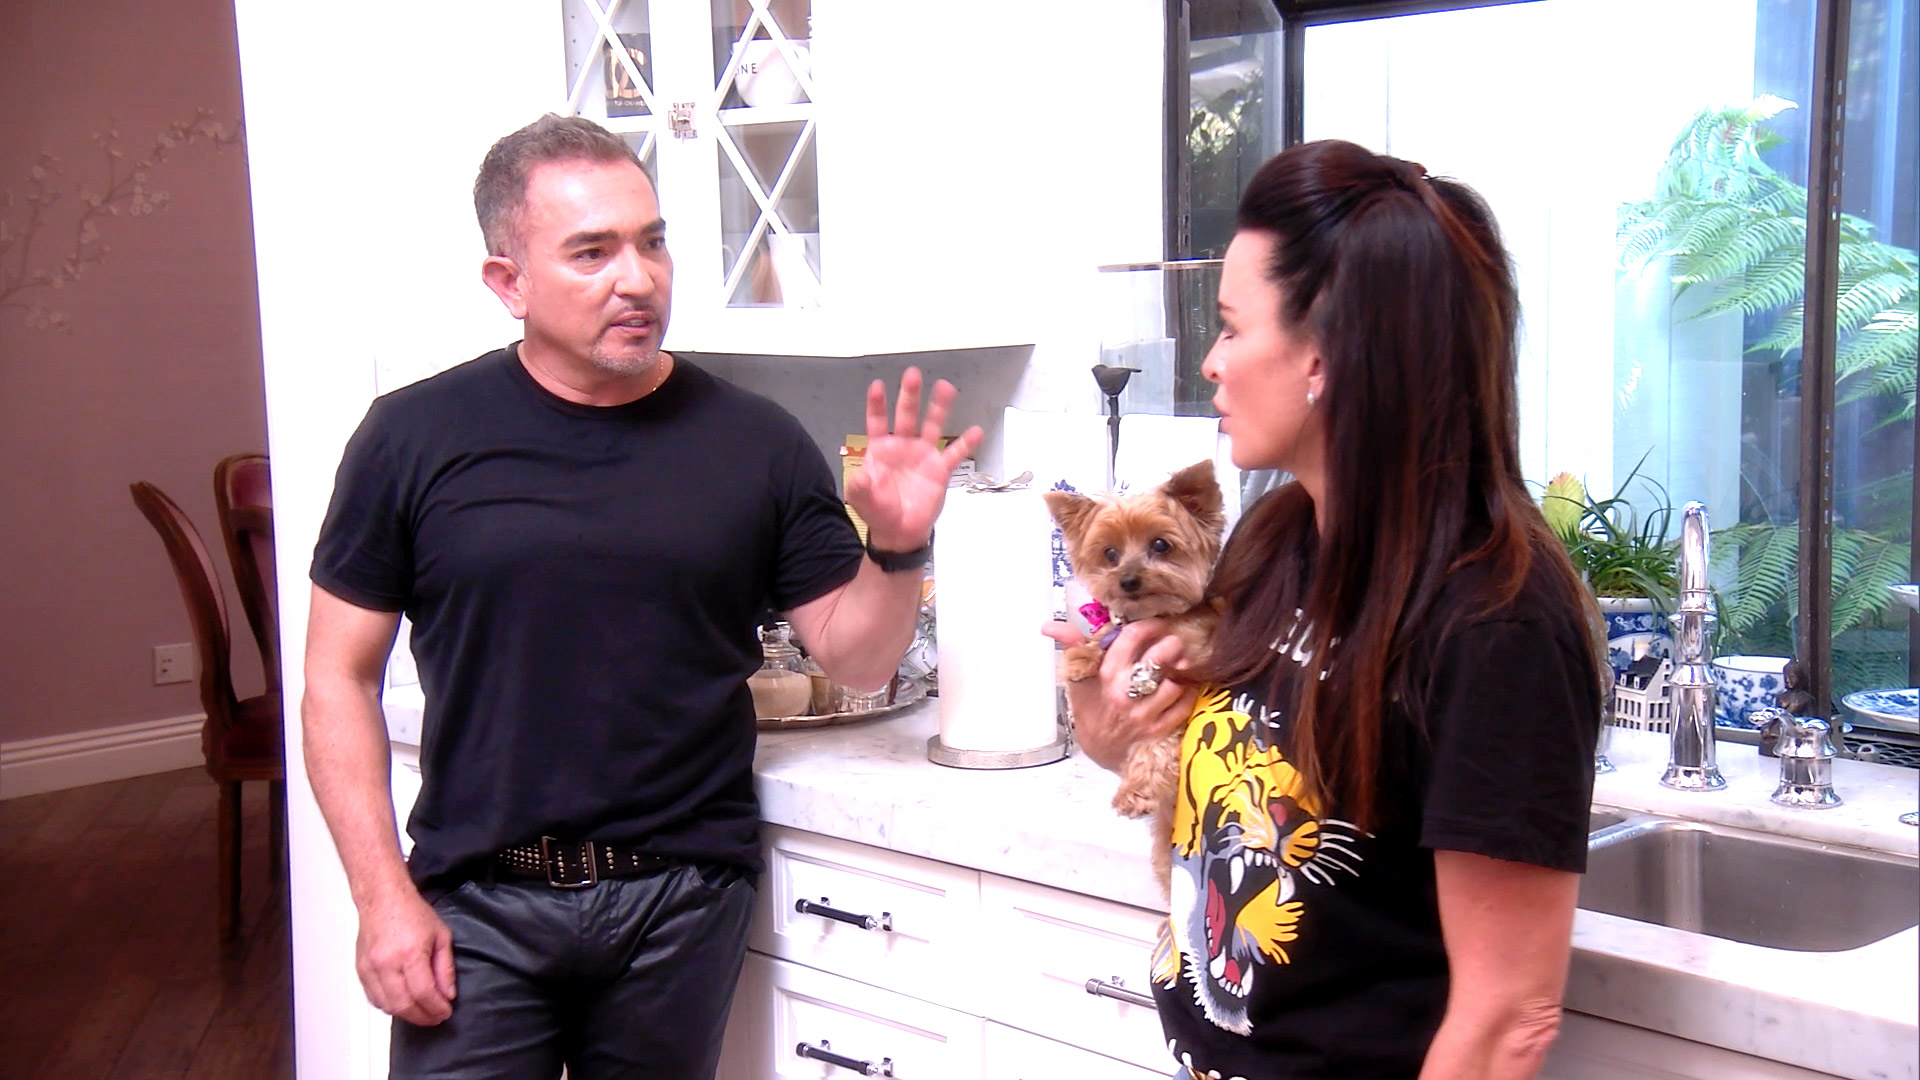 Unseen Moment: Cesar Millan Pays Kyle's Dogs a Visit